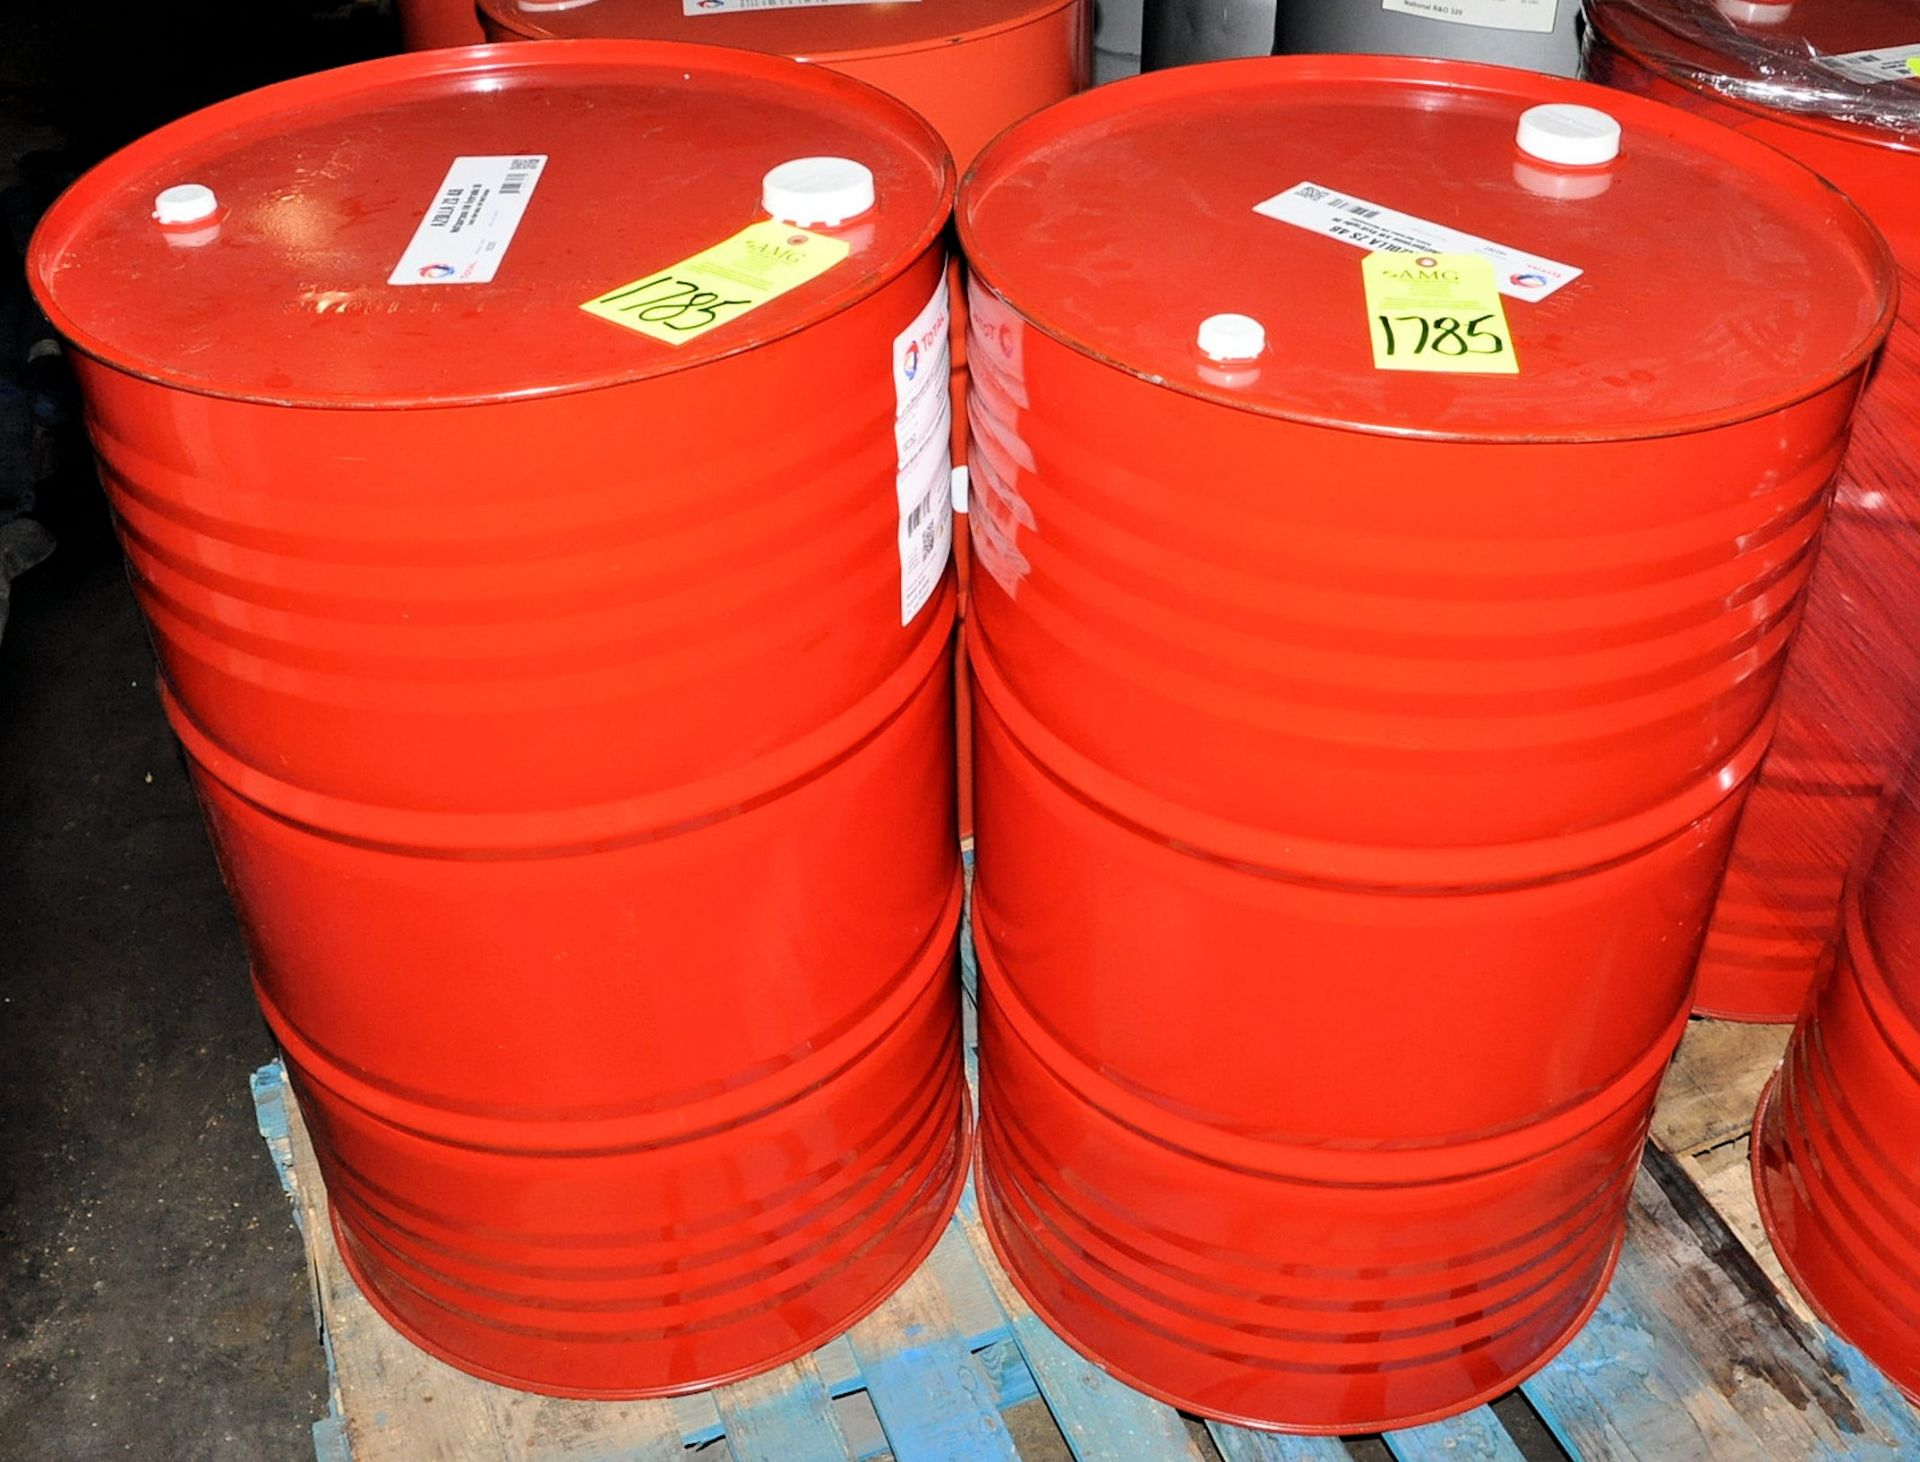 Lot-(2) 55-Gallon Drums of Total Azolla ZS 46 Multipurpose AW Hydraulic Oil on (1) Pallet, (Oils